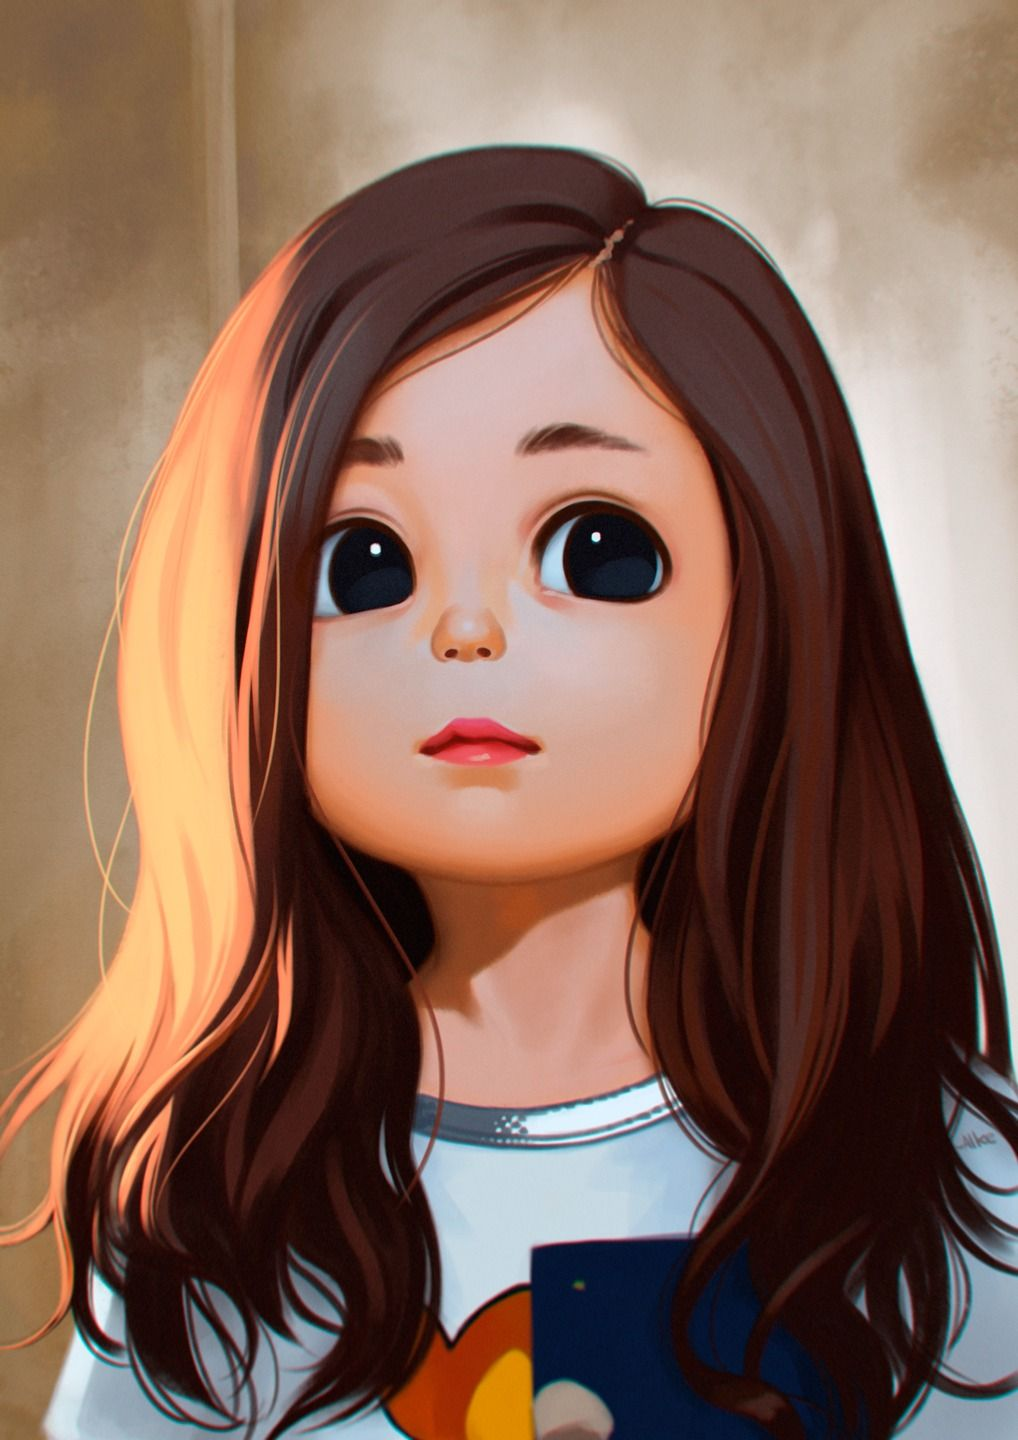 Alke My Last Painting Used A Photo As A Reference Cuteeeeeeeeeee The Eyess So Bigggggg Girl Cartoon Characters Girl Face Drawing Girl Cartoon